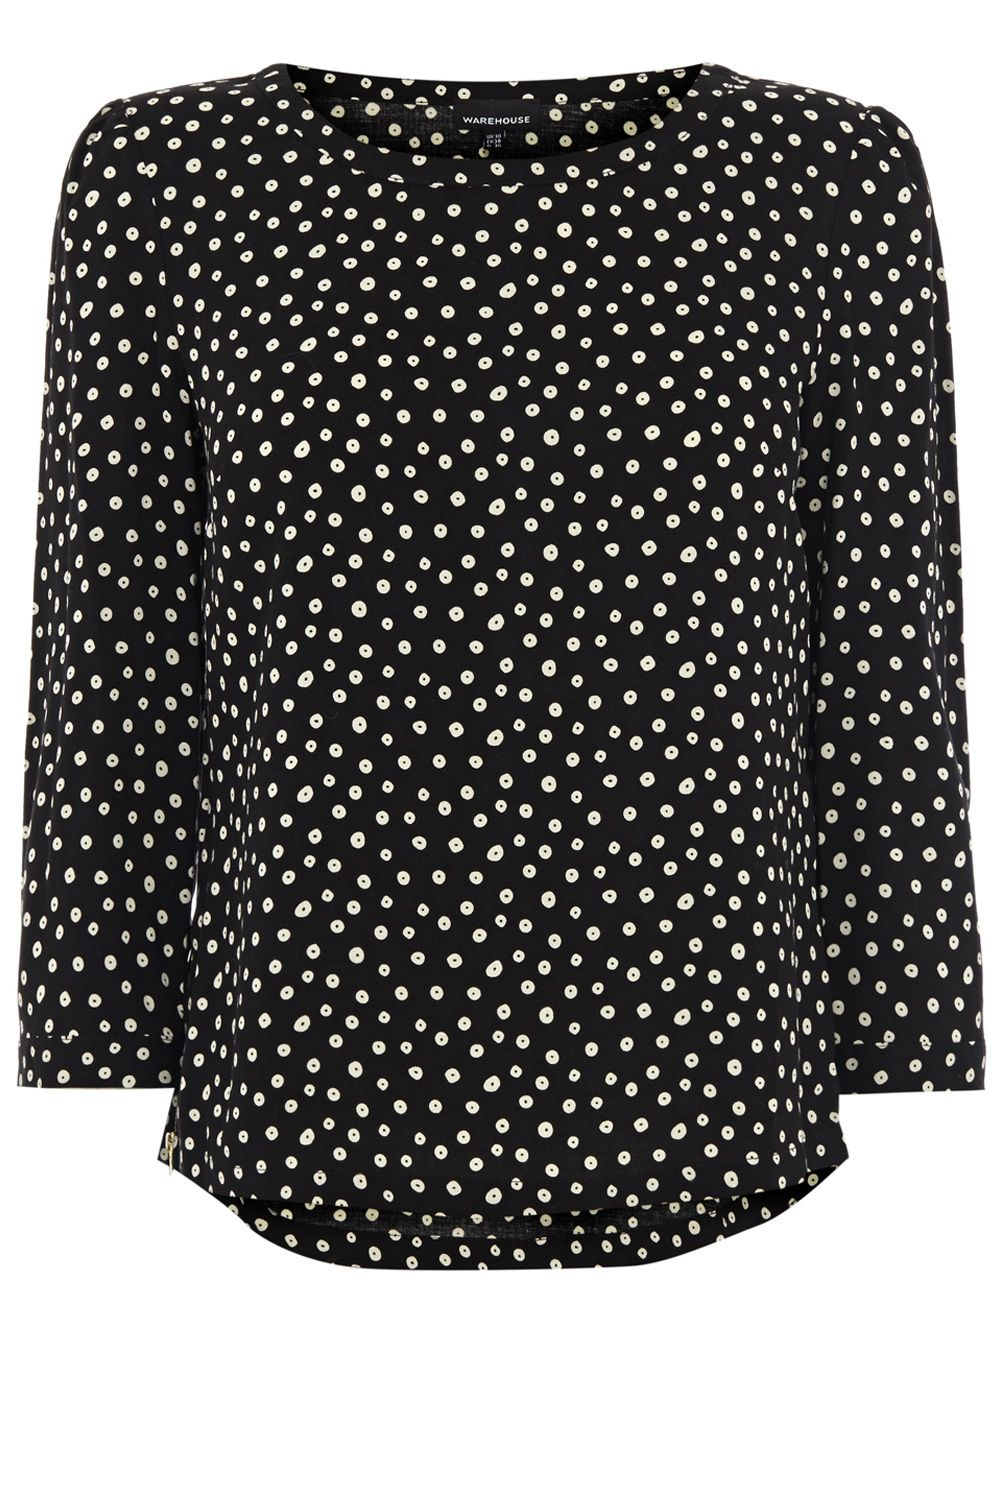 Spotty side zip top